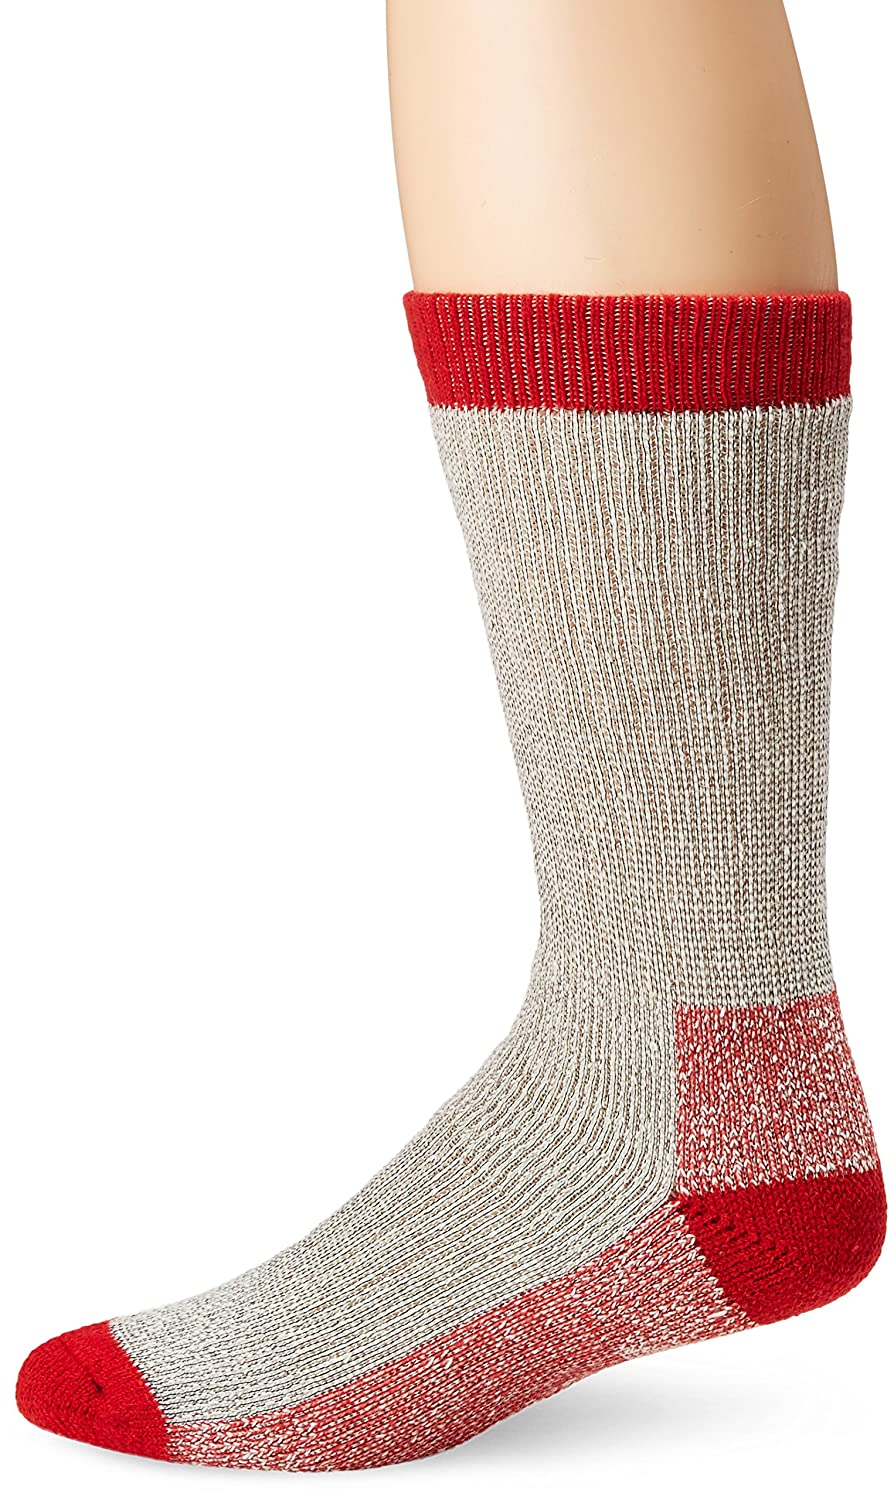 Terramar Superior Warmth Comfort Thermal Wool Boot Socks (Pack of 2) 1099-2